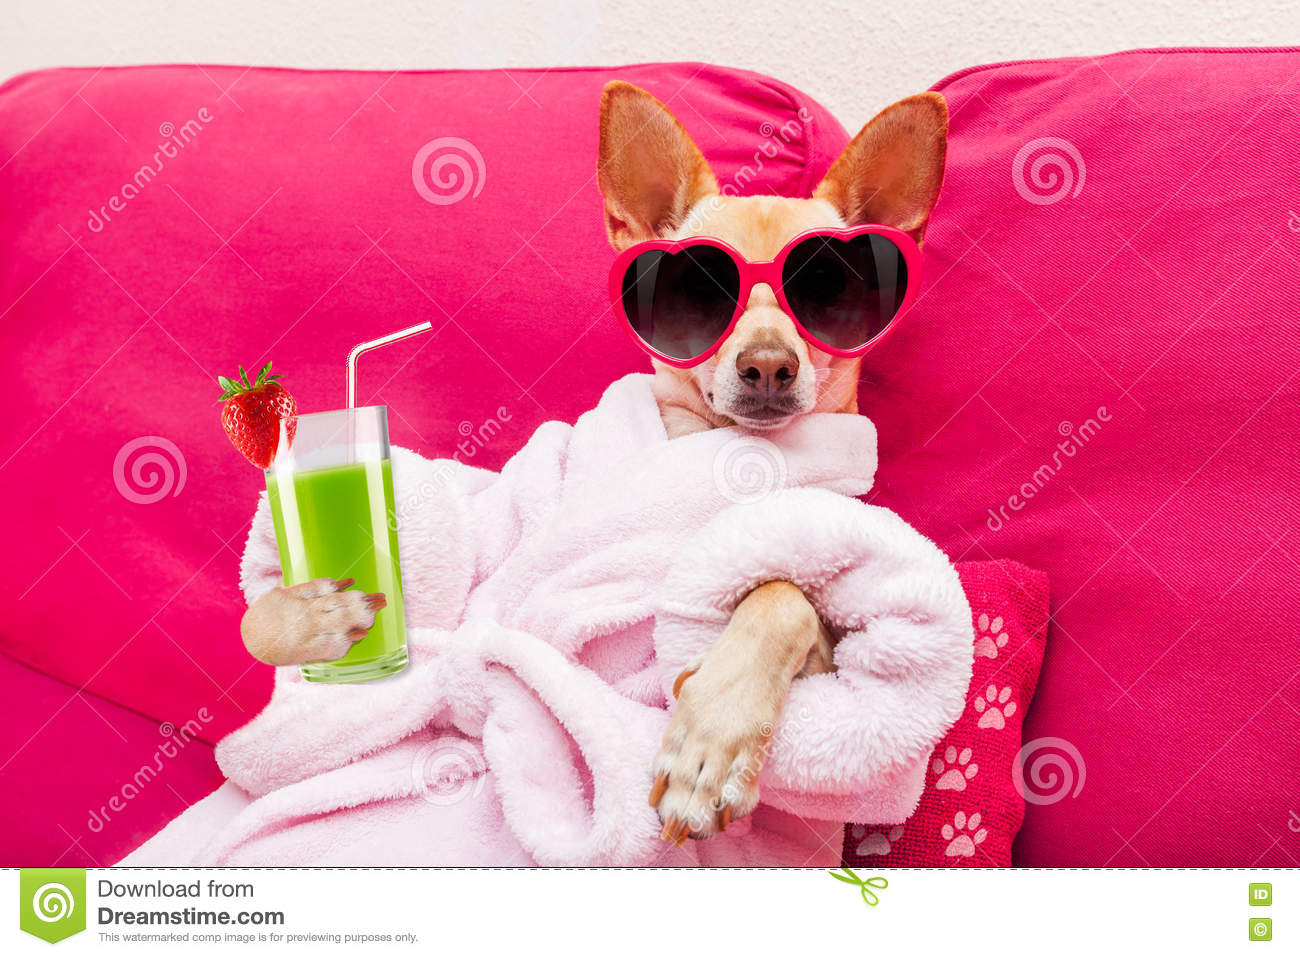 dog-spa-wellness-chihuahua-relaxing-lyin